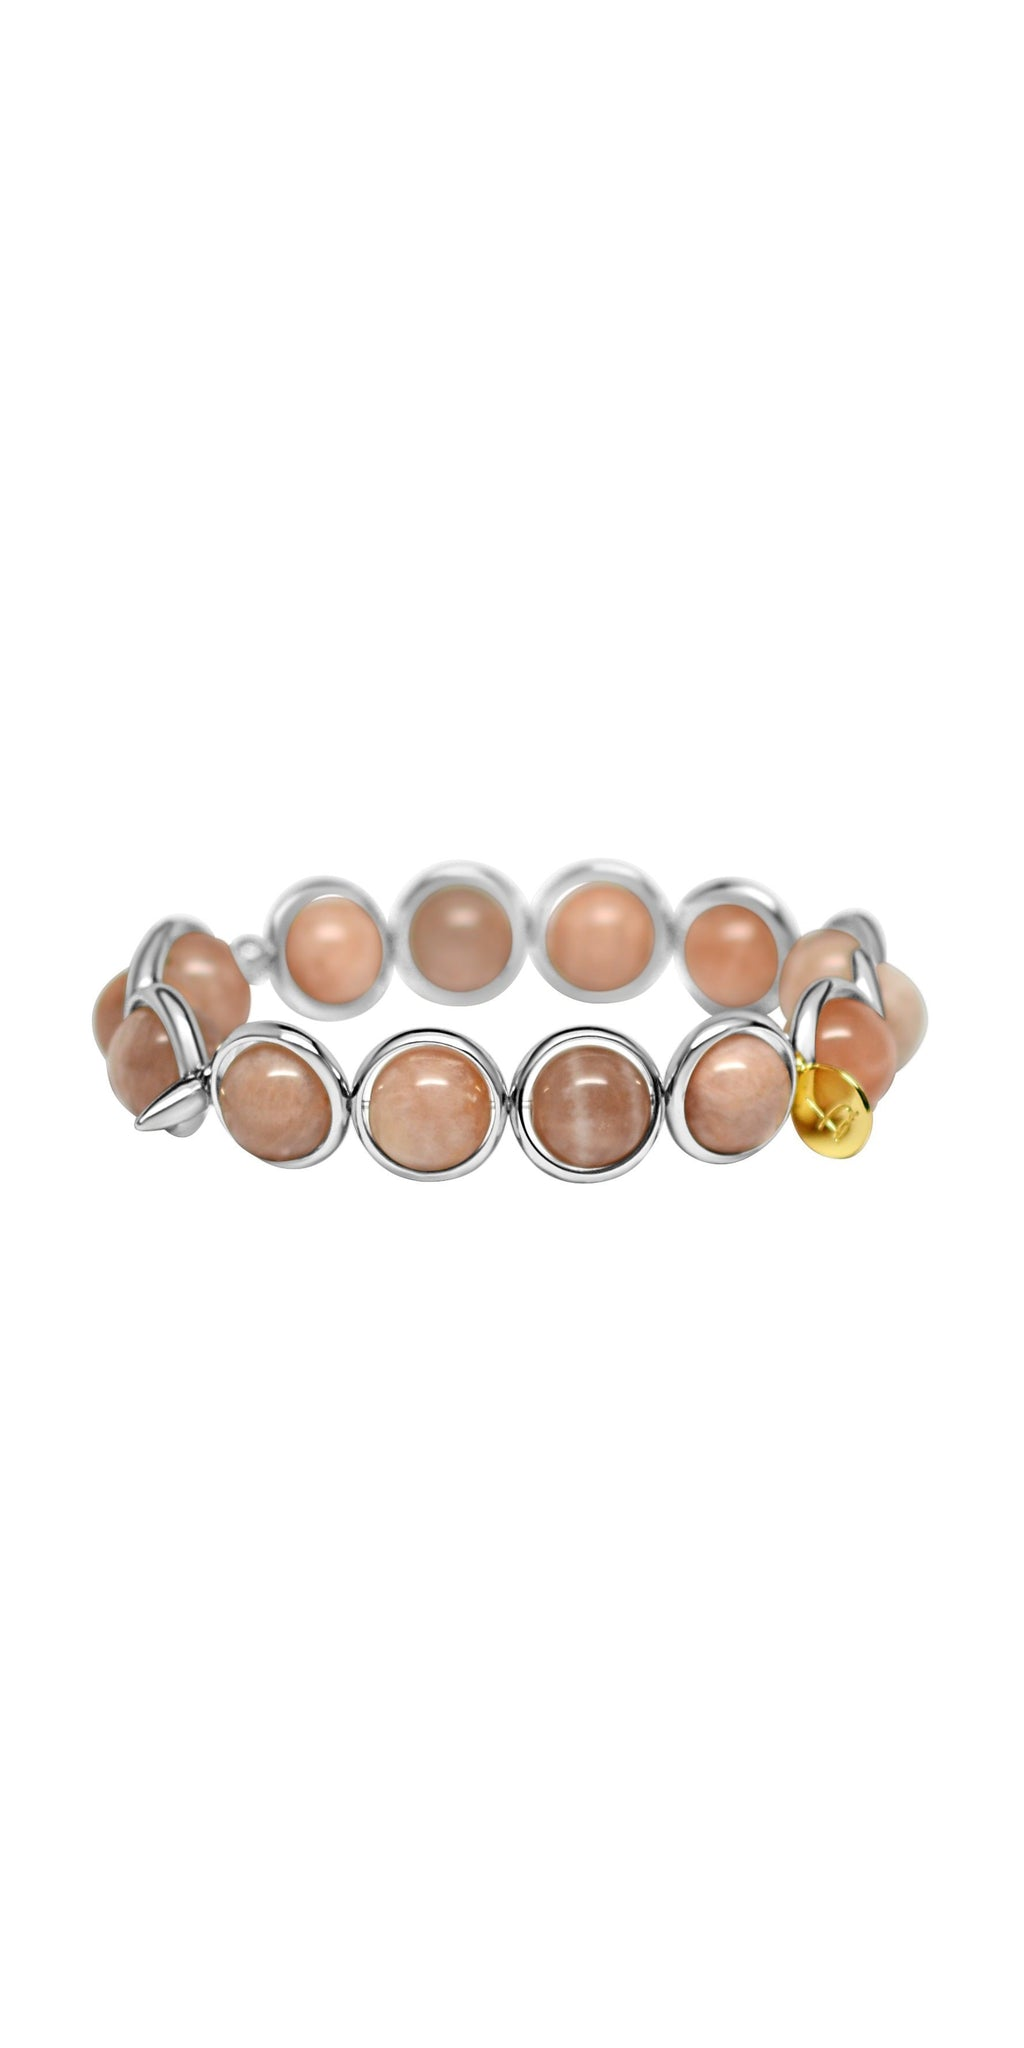 Moonstone Bead Bracelet - Silver-Sea Biscuit Del Mar